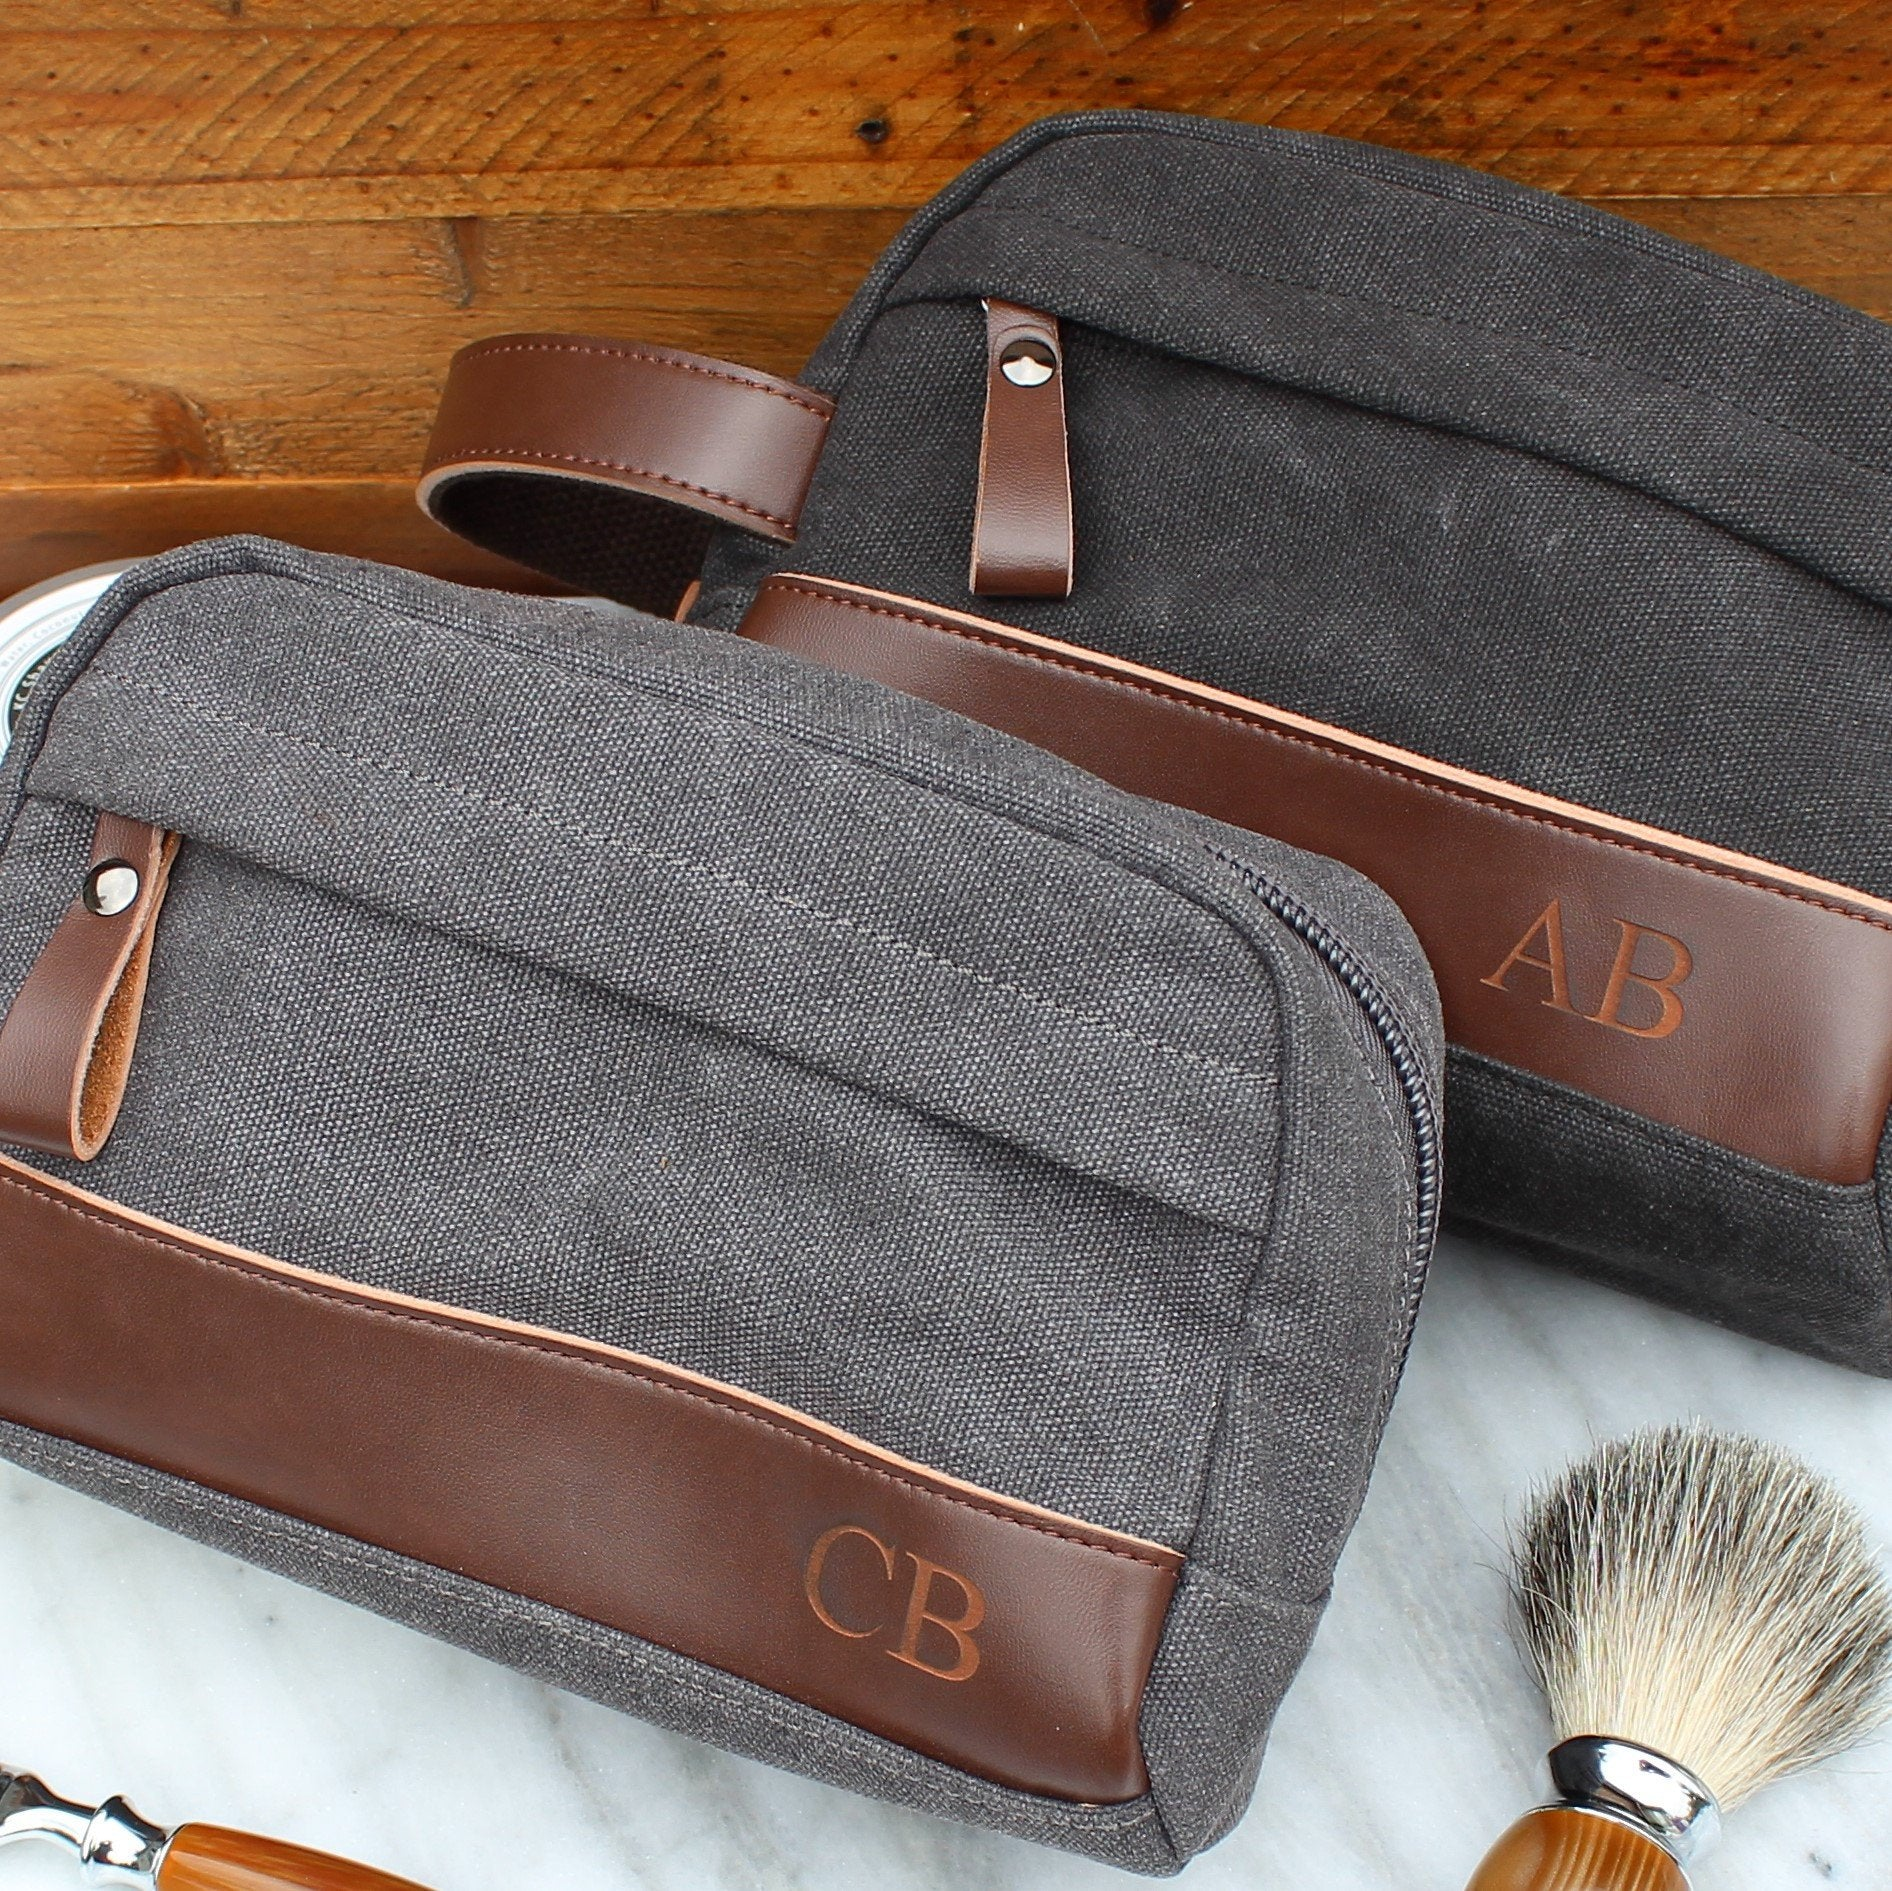 469c57006f The Peale - Groomsmen s Travel Size Toiletry Bag in Black or Grey -  Personalized Canvas Dopp Kit